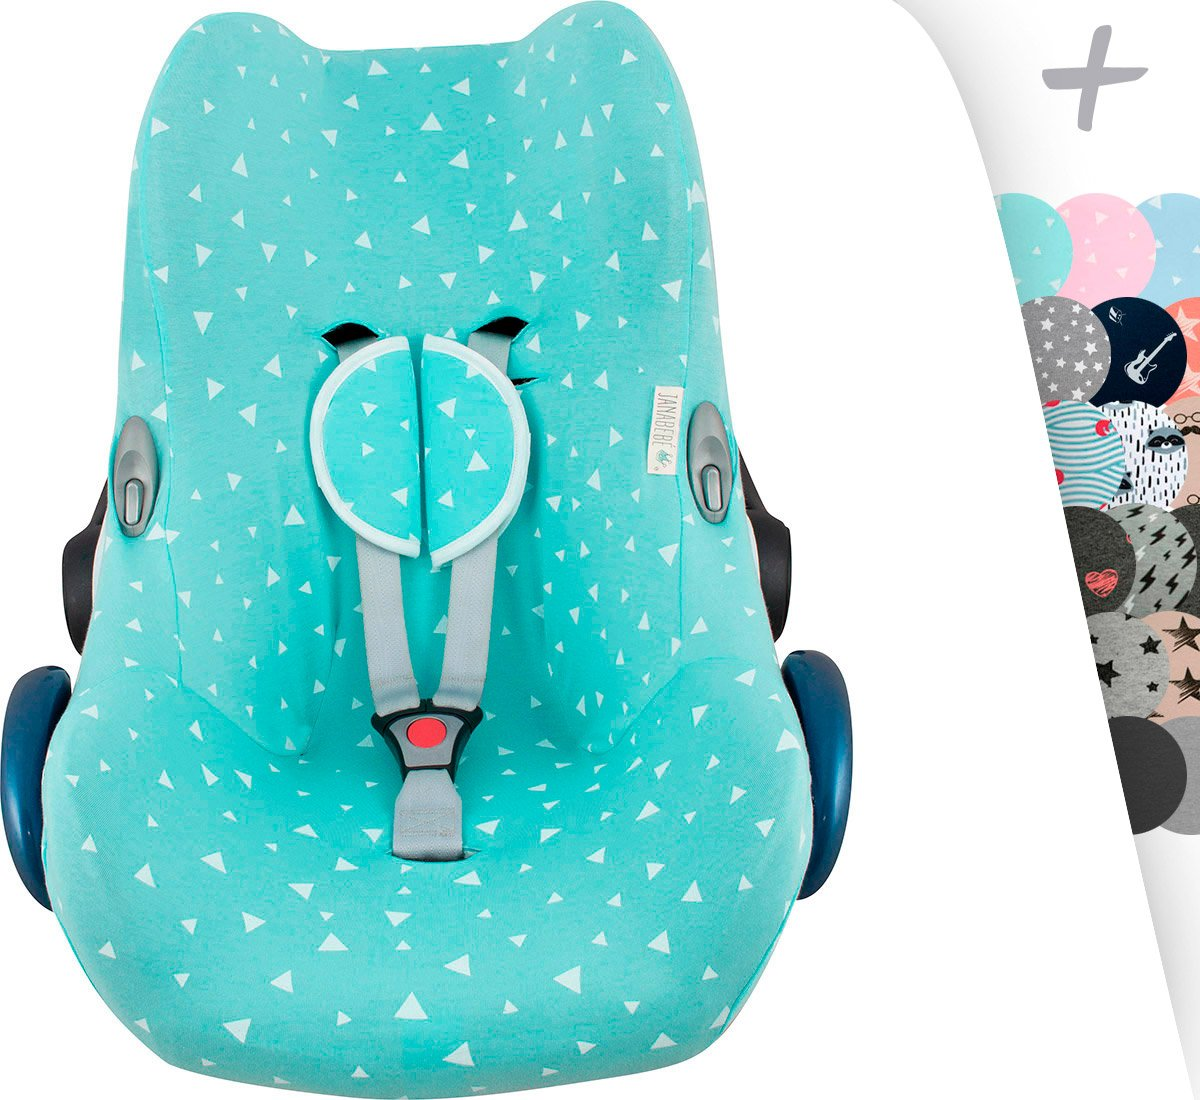 JANABEBE Cover Liner for Maxi Cosi Cabrio Fix, Citi, Streety Fix, Jané Koos + Harness Protection Pads by (Blue Sparkles) MX/F01/034/270